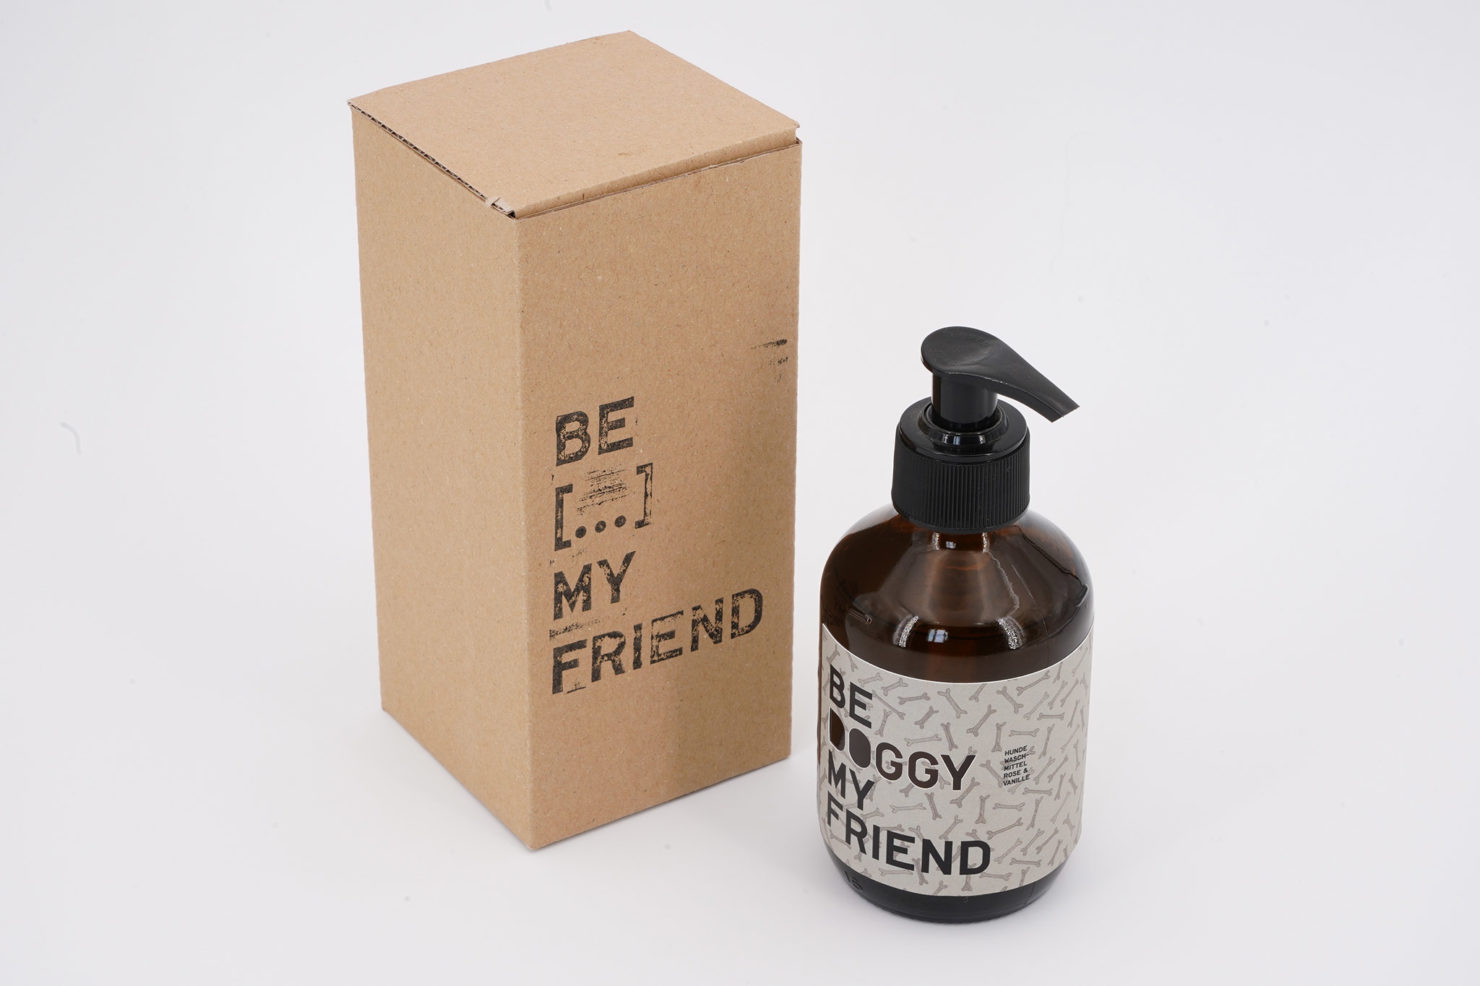 BE DOGGY MY FRIEND 200ML BE MY FRIEND